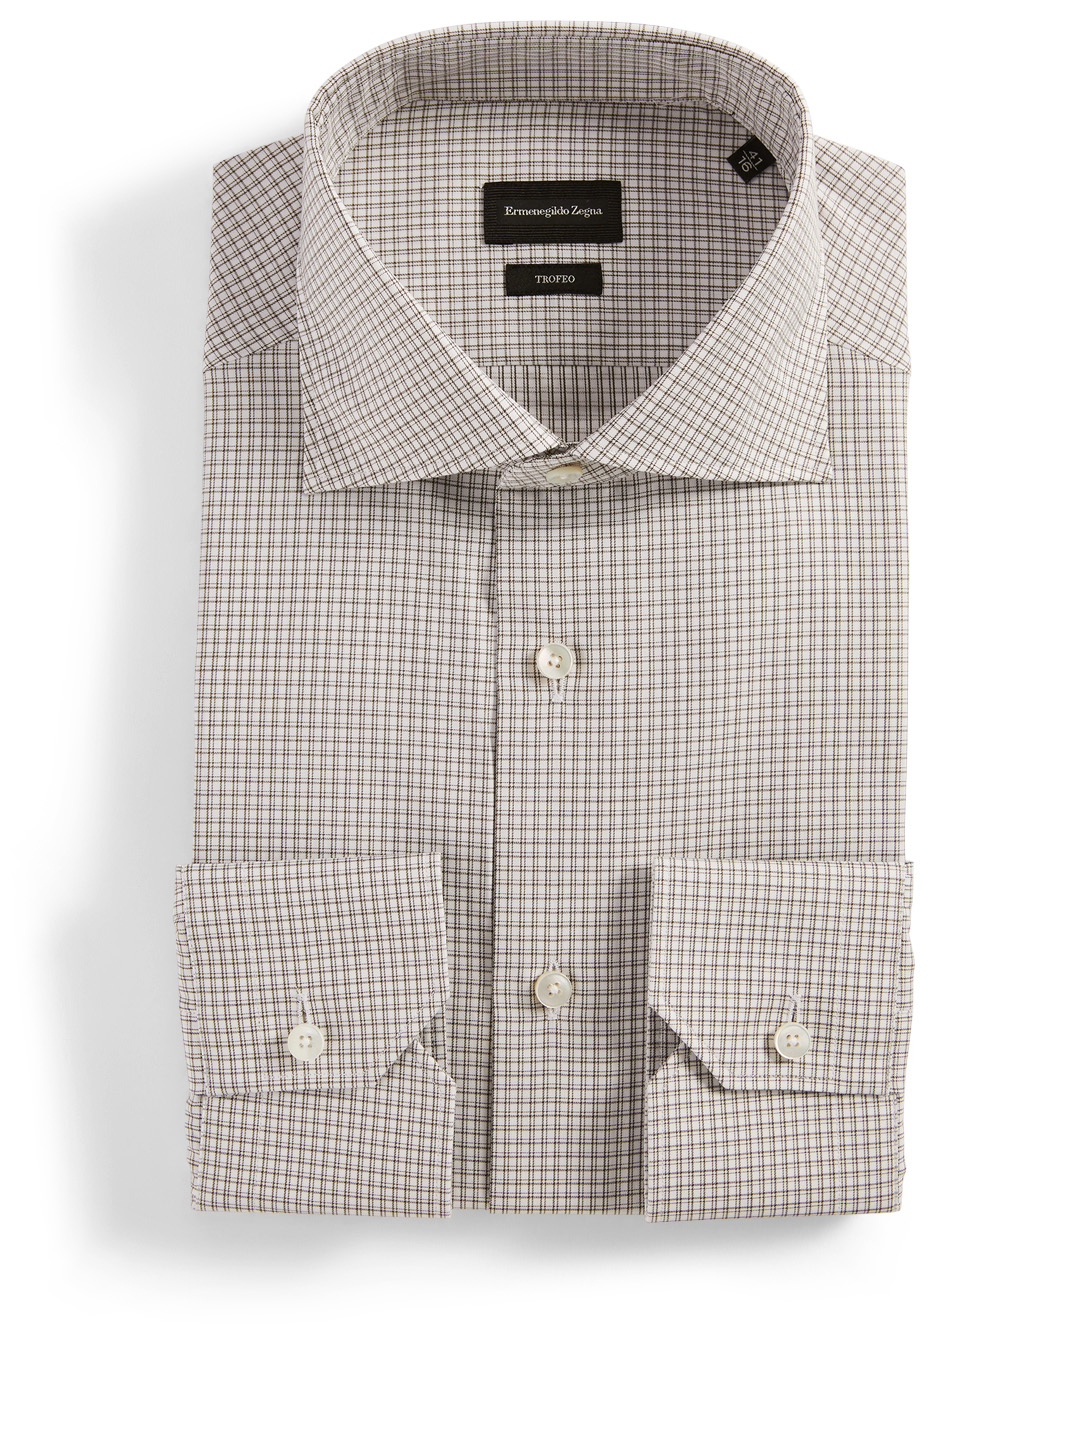 ERMENEGILDO ZEGNA Dress Shirt In Check Men's Green